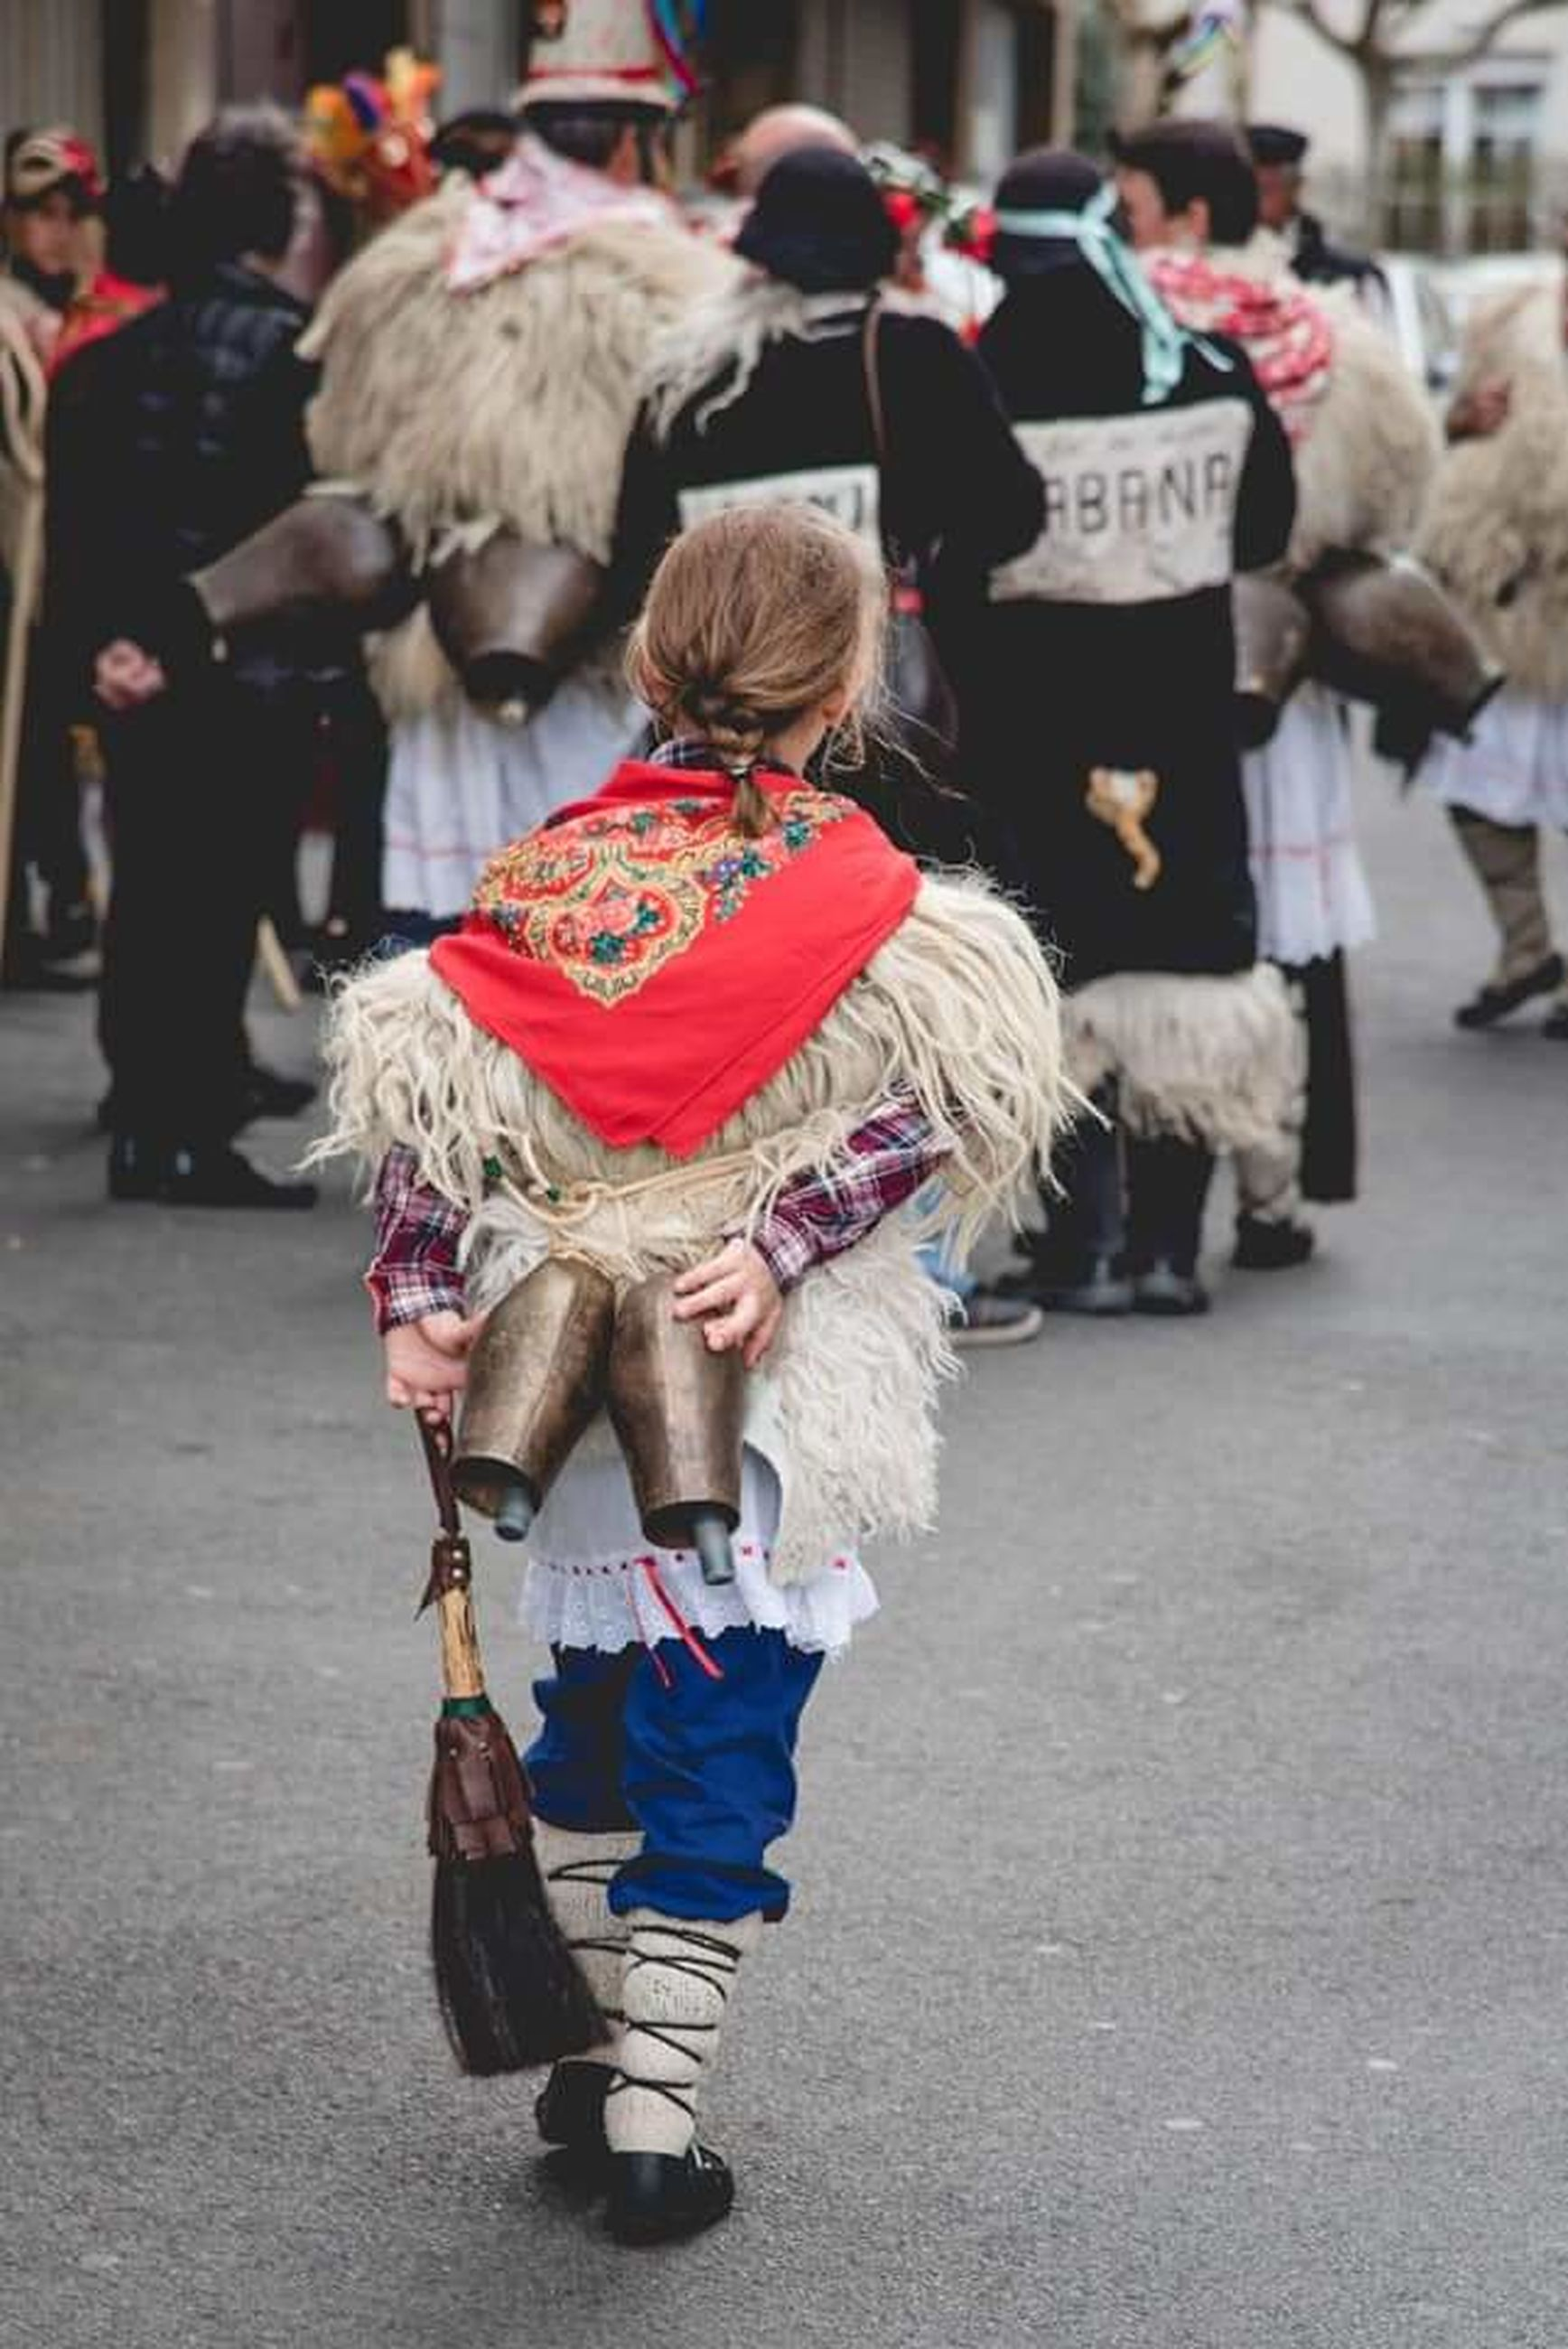 city, street, festival, tradition, full length, group of people, adult, arts culture and entertainment, architecture, crowd, clothing, costume, carnival, traditional clothing, rear view, men, women, celebration, walking, road, large group of people, day, outdoors, person, event, footwear